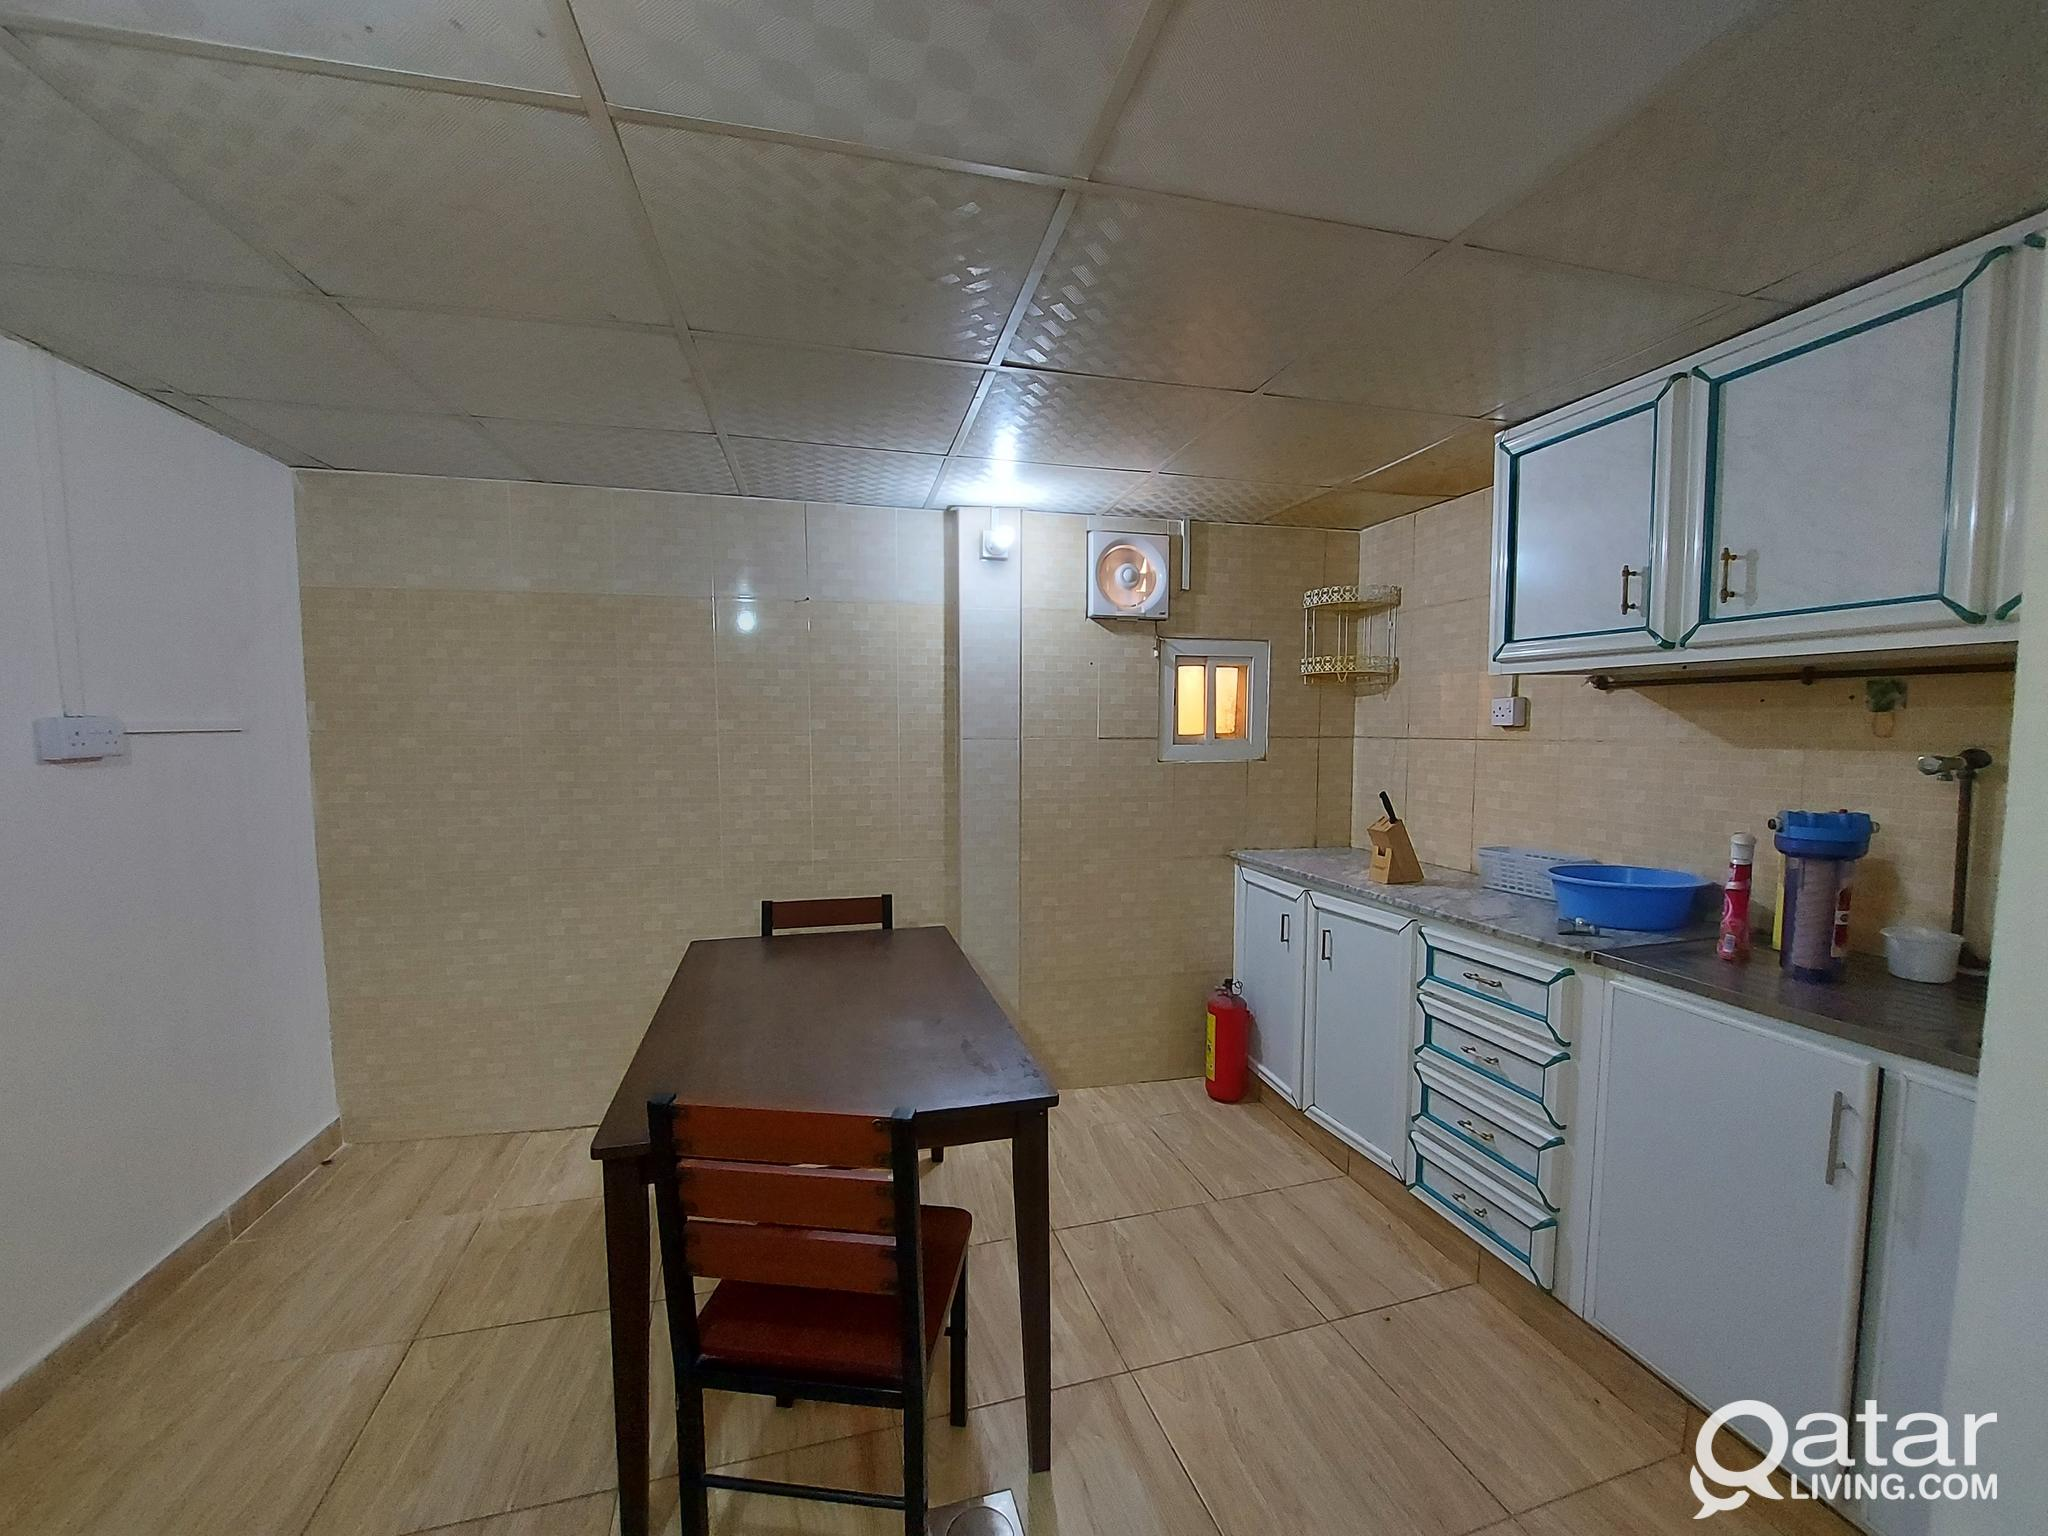 2BHK ROOM IN FEREEJ KULAIB FOR FAMILY, NO COMMISSI